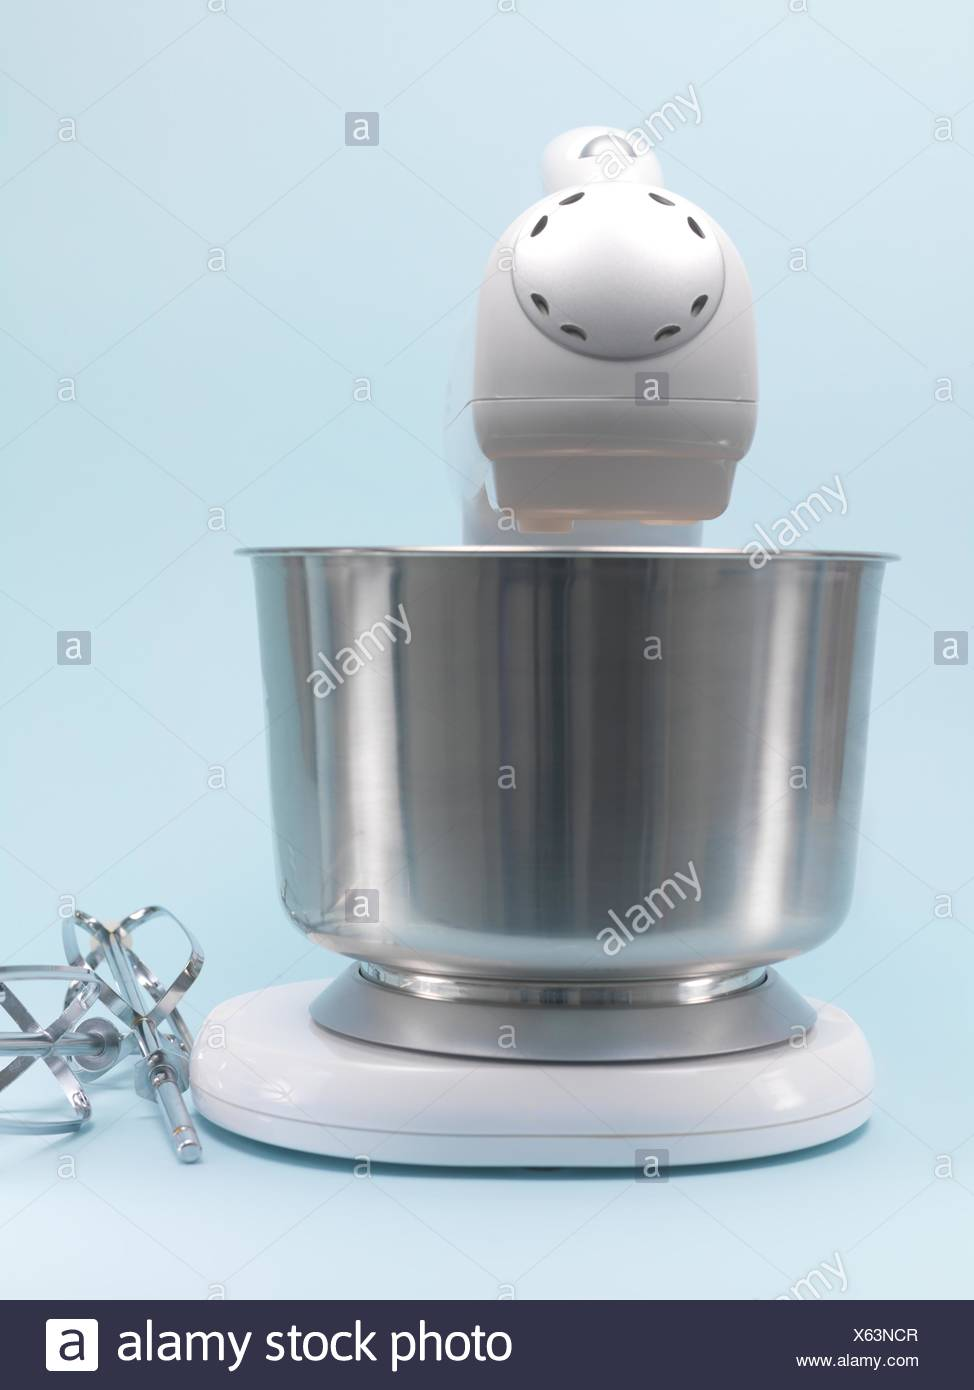 A Food Mixer Isolated Against A Blue Background   Stock Image